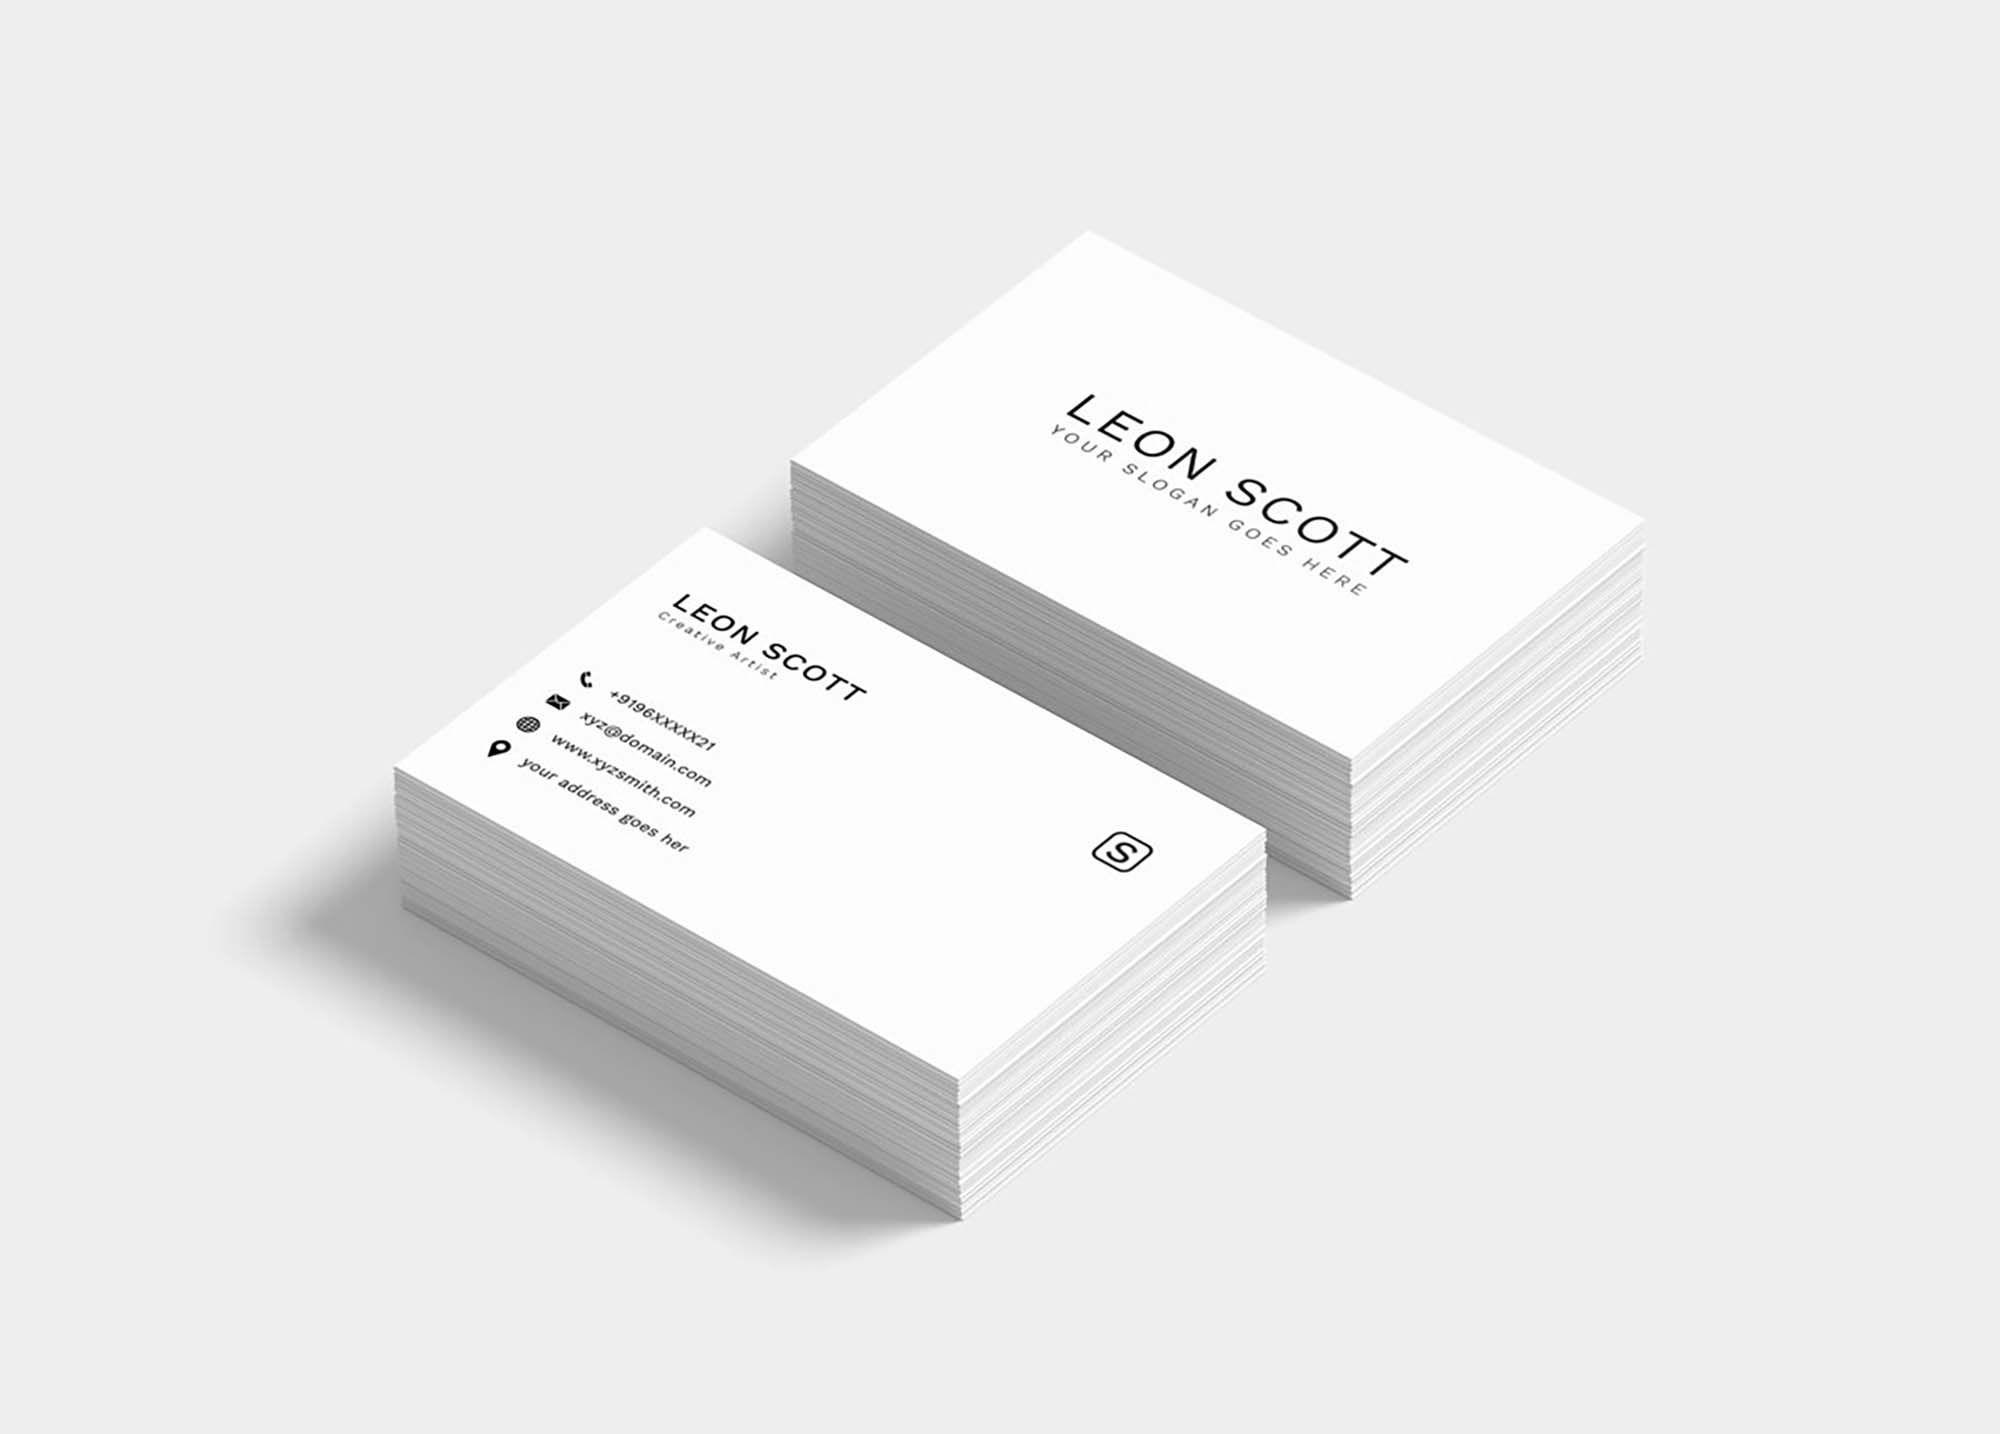 005 Magnificent Free Photoshop Busines Card Template Inspiration  Blank Download Adobe Psd MockupFull